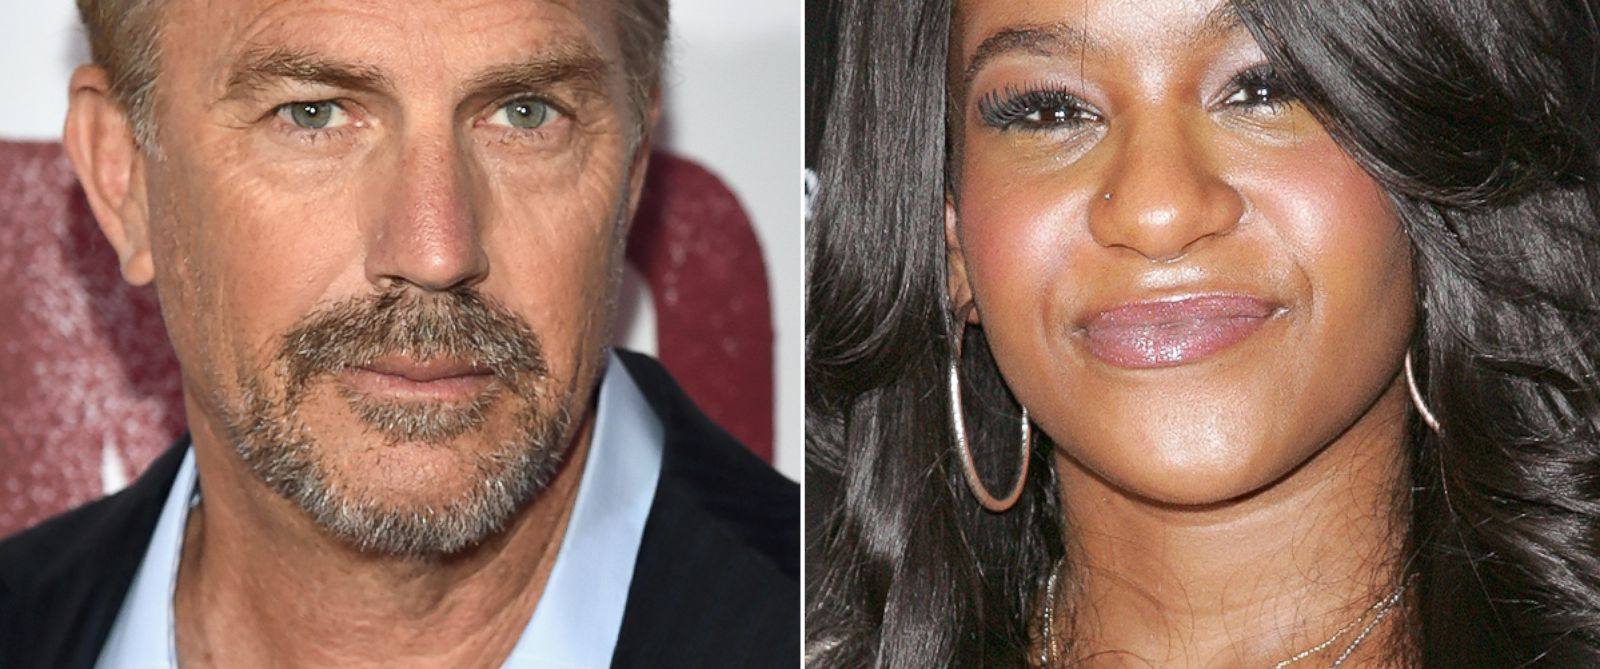 PHOTO: Kevin Costner, left, and Bobbi Kristina Brown, right, are pictured.